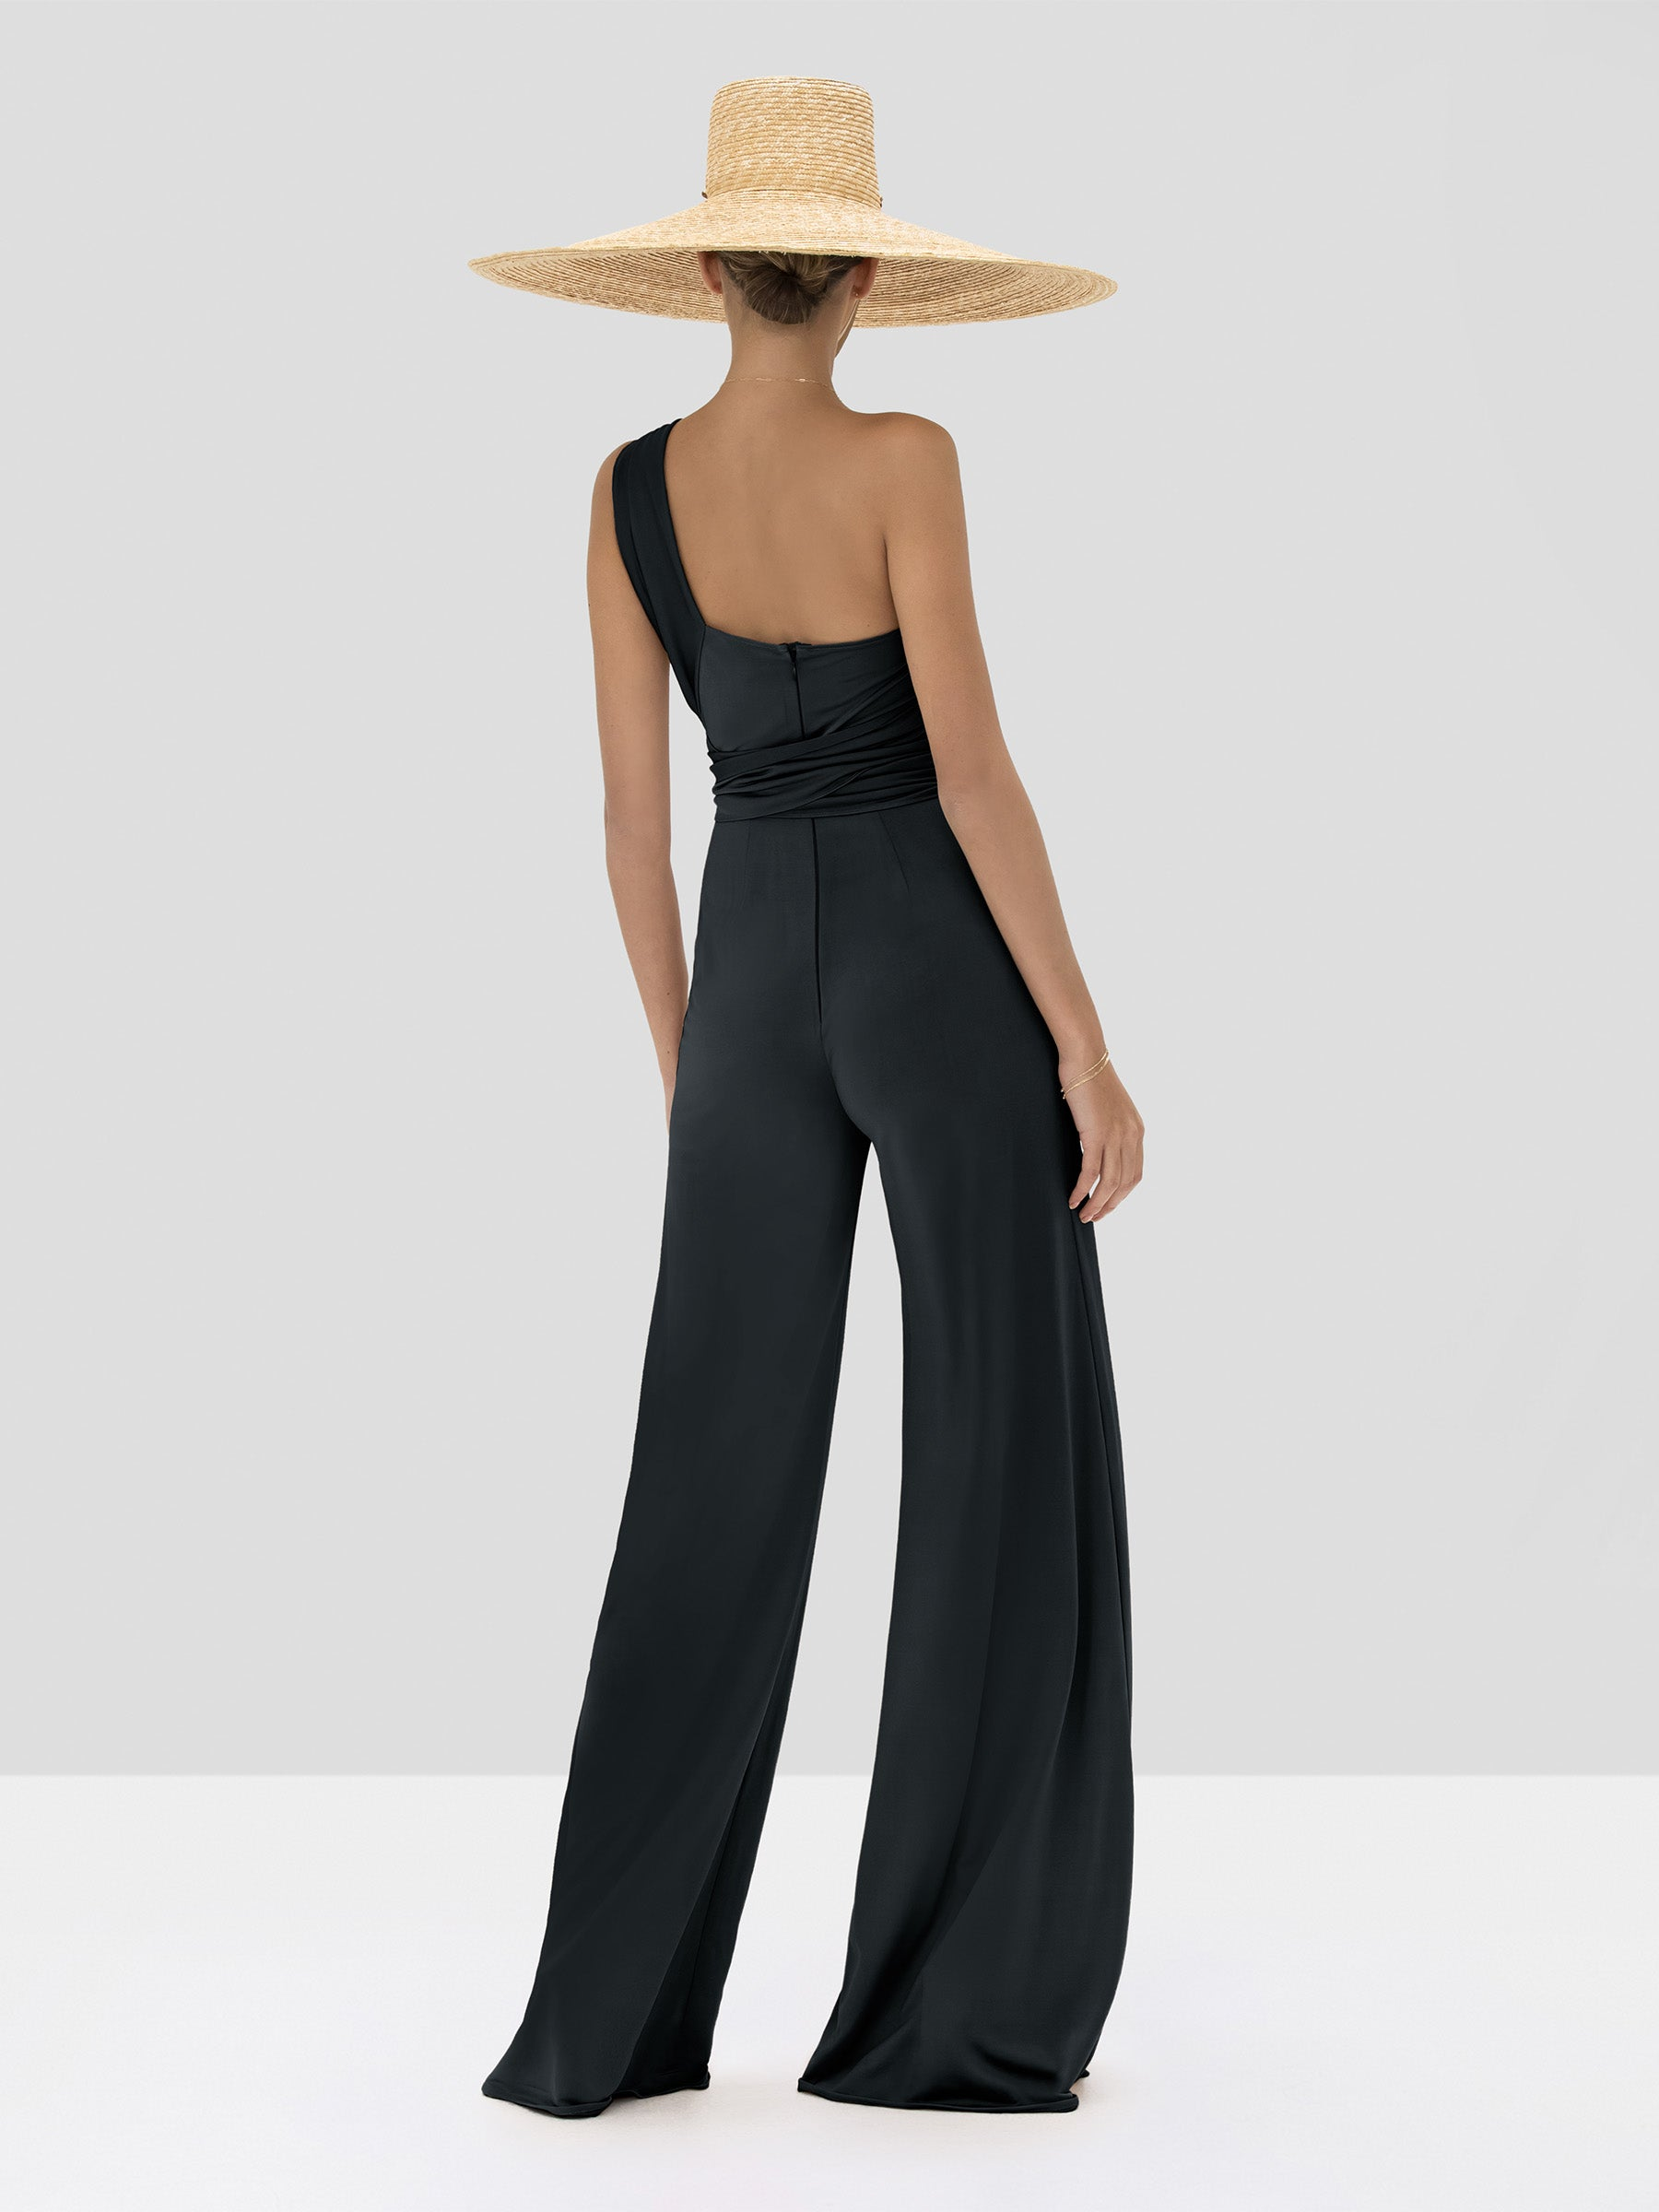 Alexis Parson Jumpsuit in Black from the Spring Summer 2020 Collection - Rear View